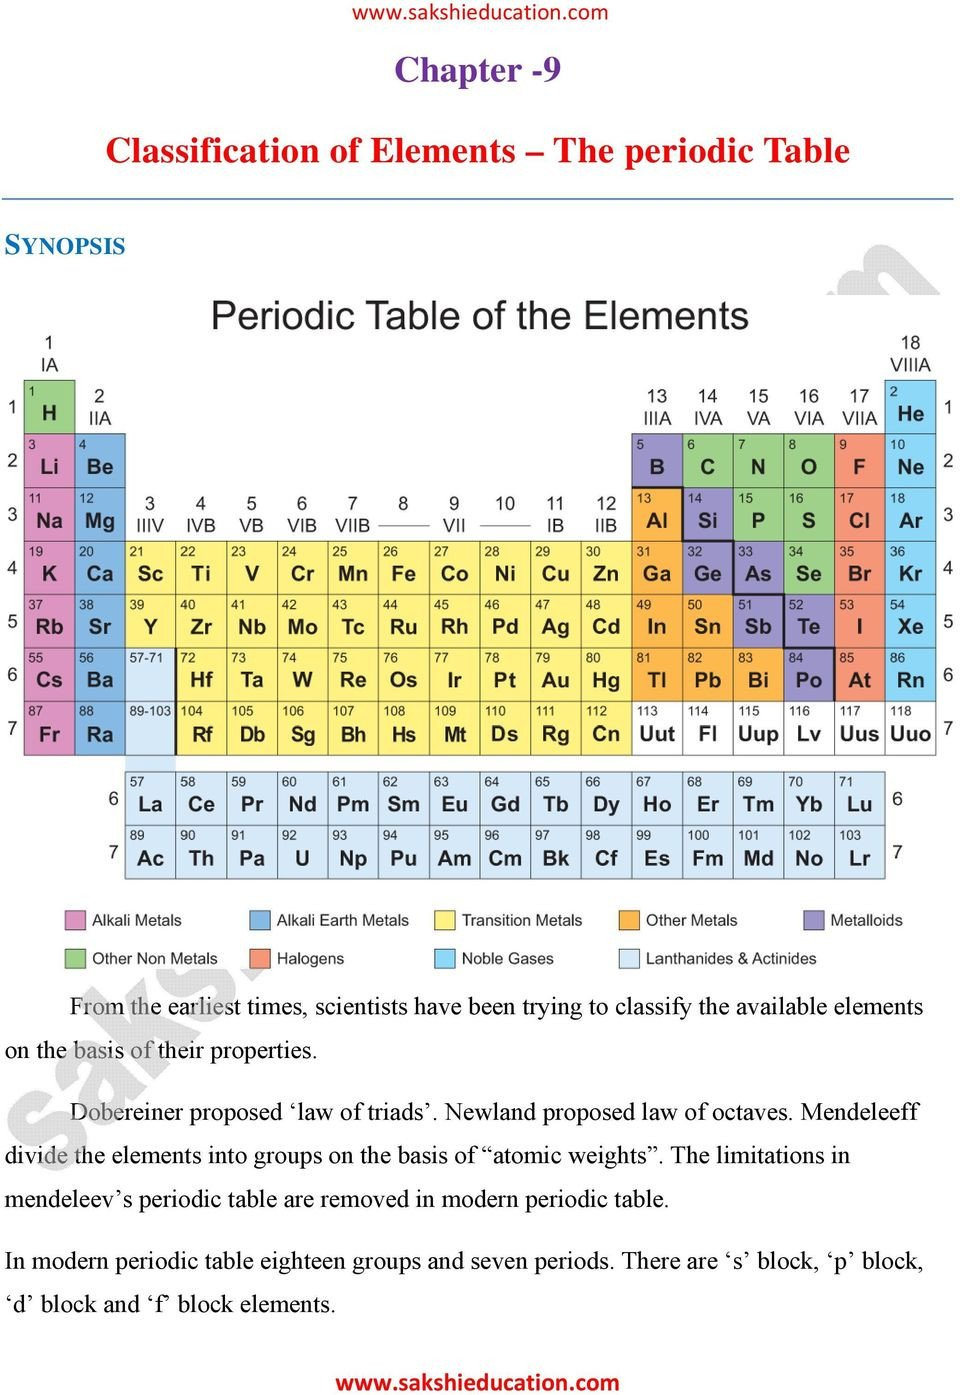 Chapter 9 classification of elements the periodic table